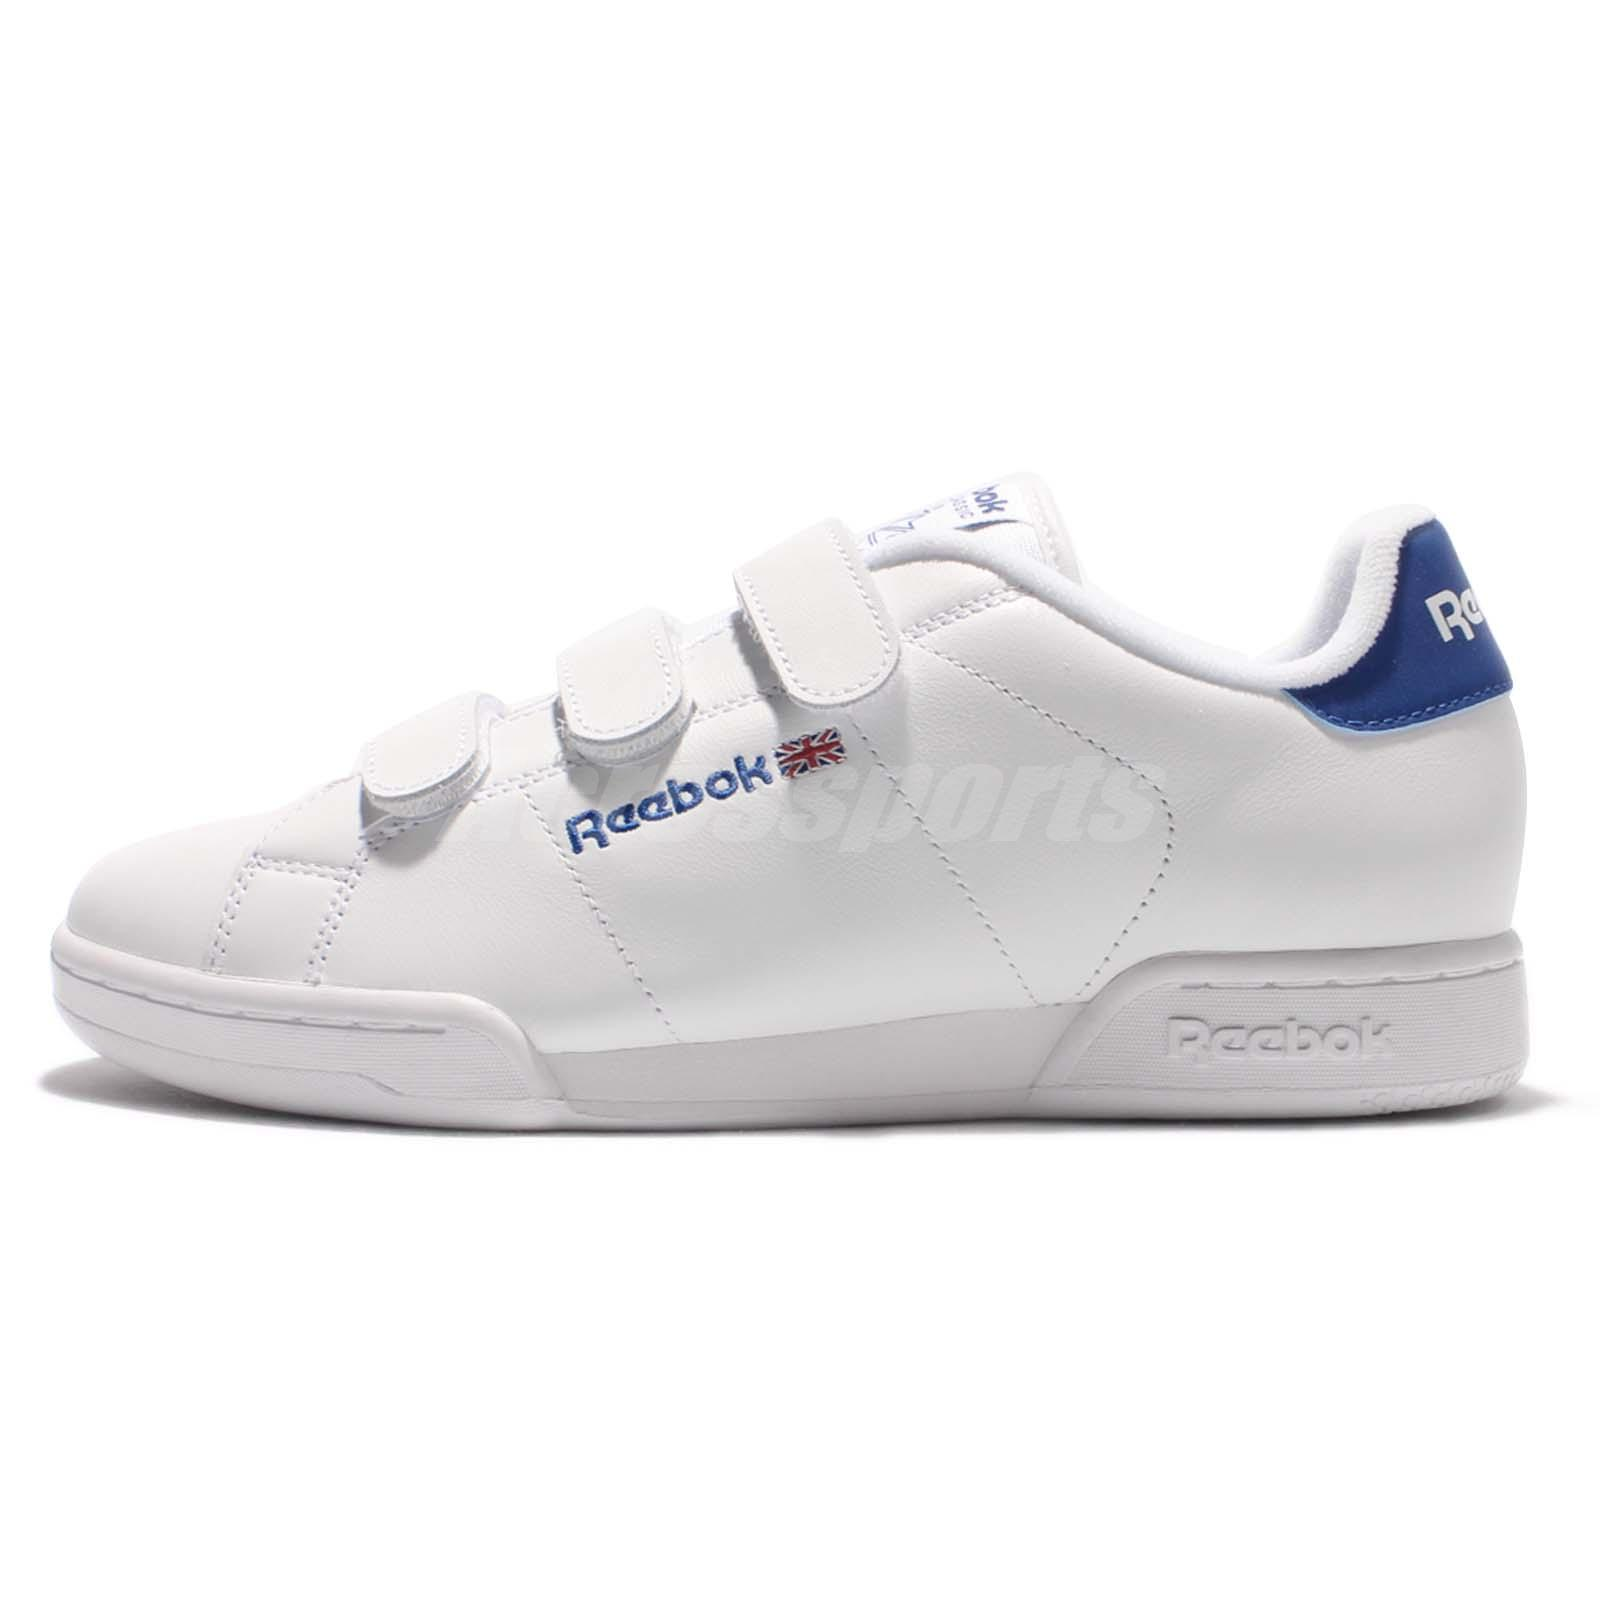 ... Running Shoes Sneakers AR2963 Reebok NPC Straps White Blue Leather Men  Court Classic Shoes Sneakers AR1649 ... d5583b289